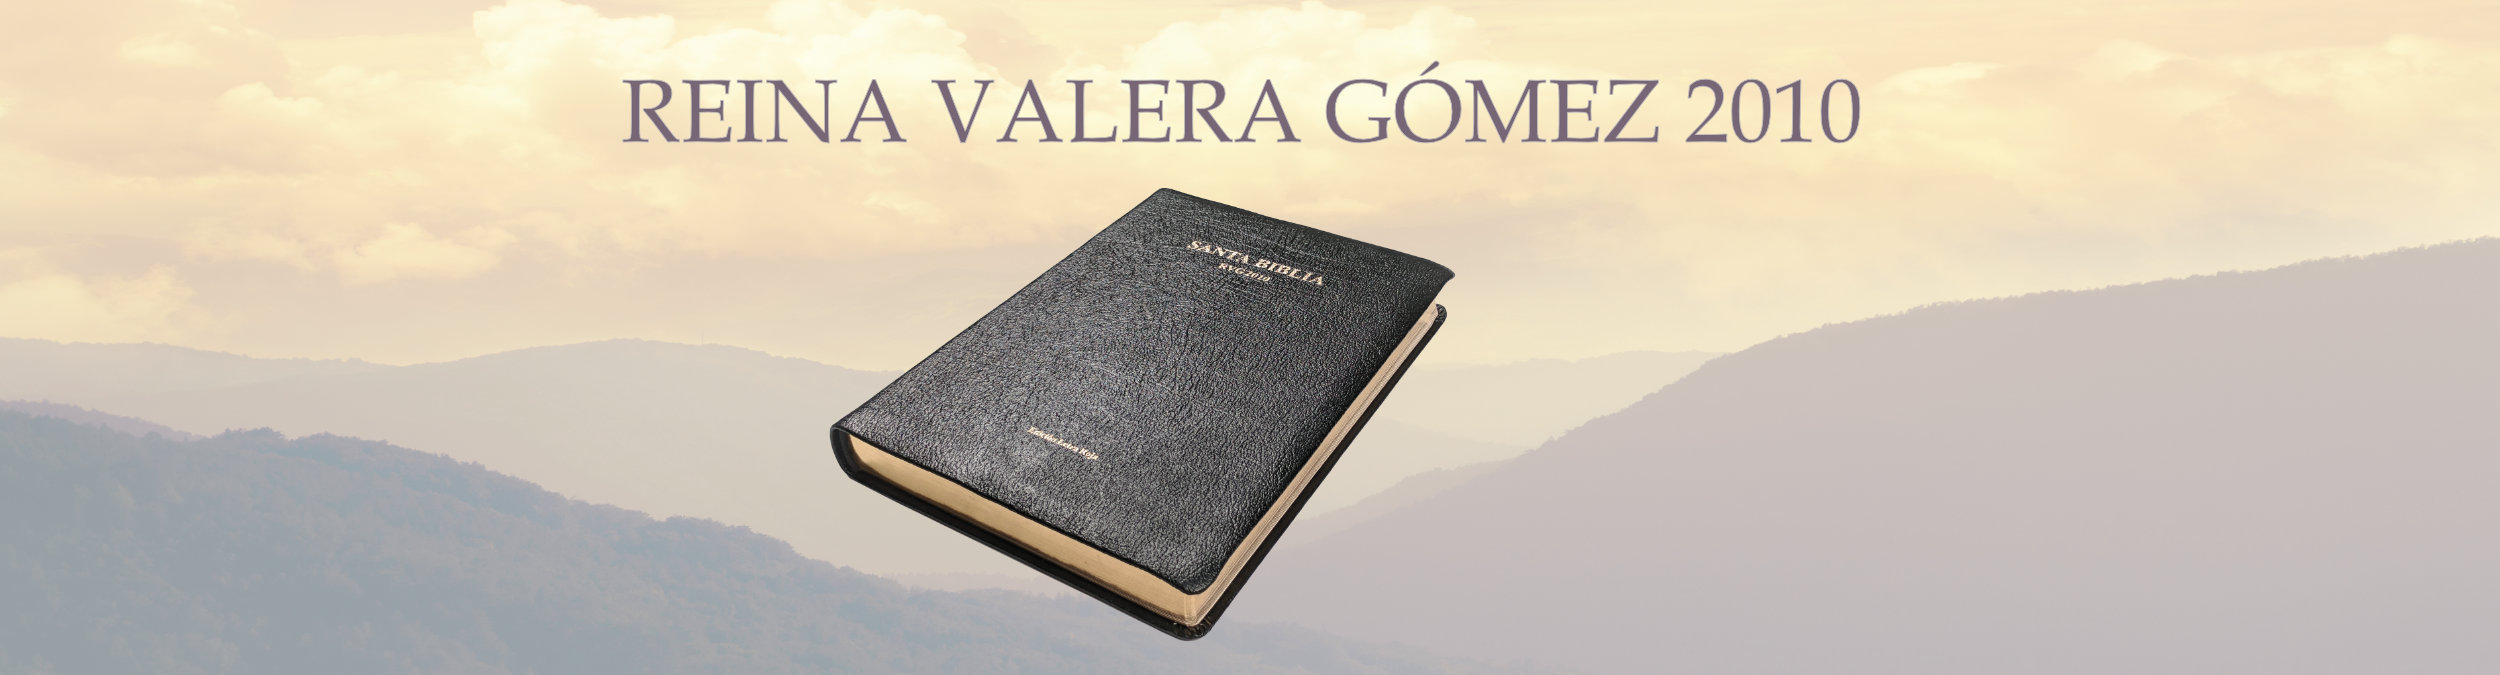 Chick com: Bibles in Spanish